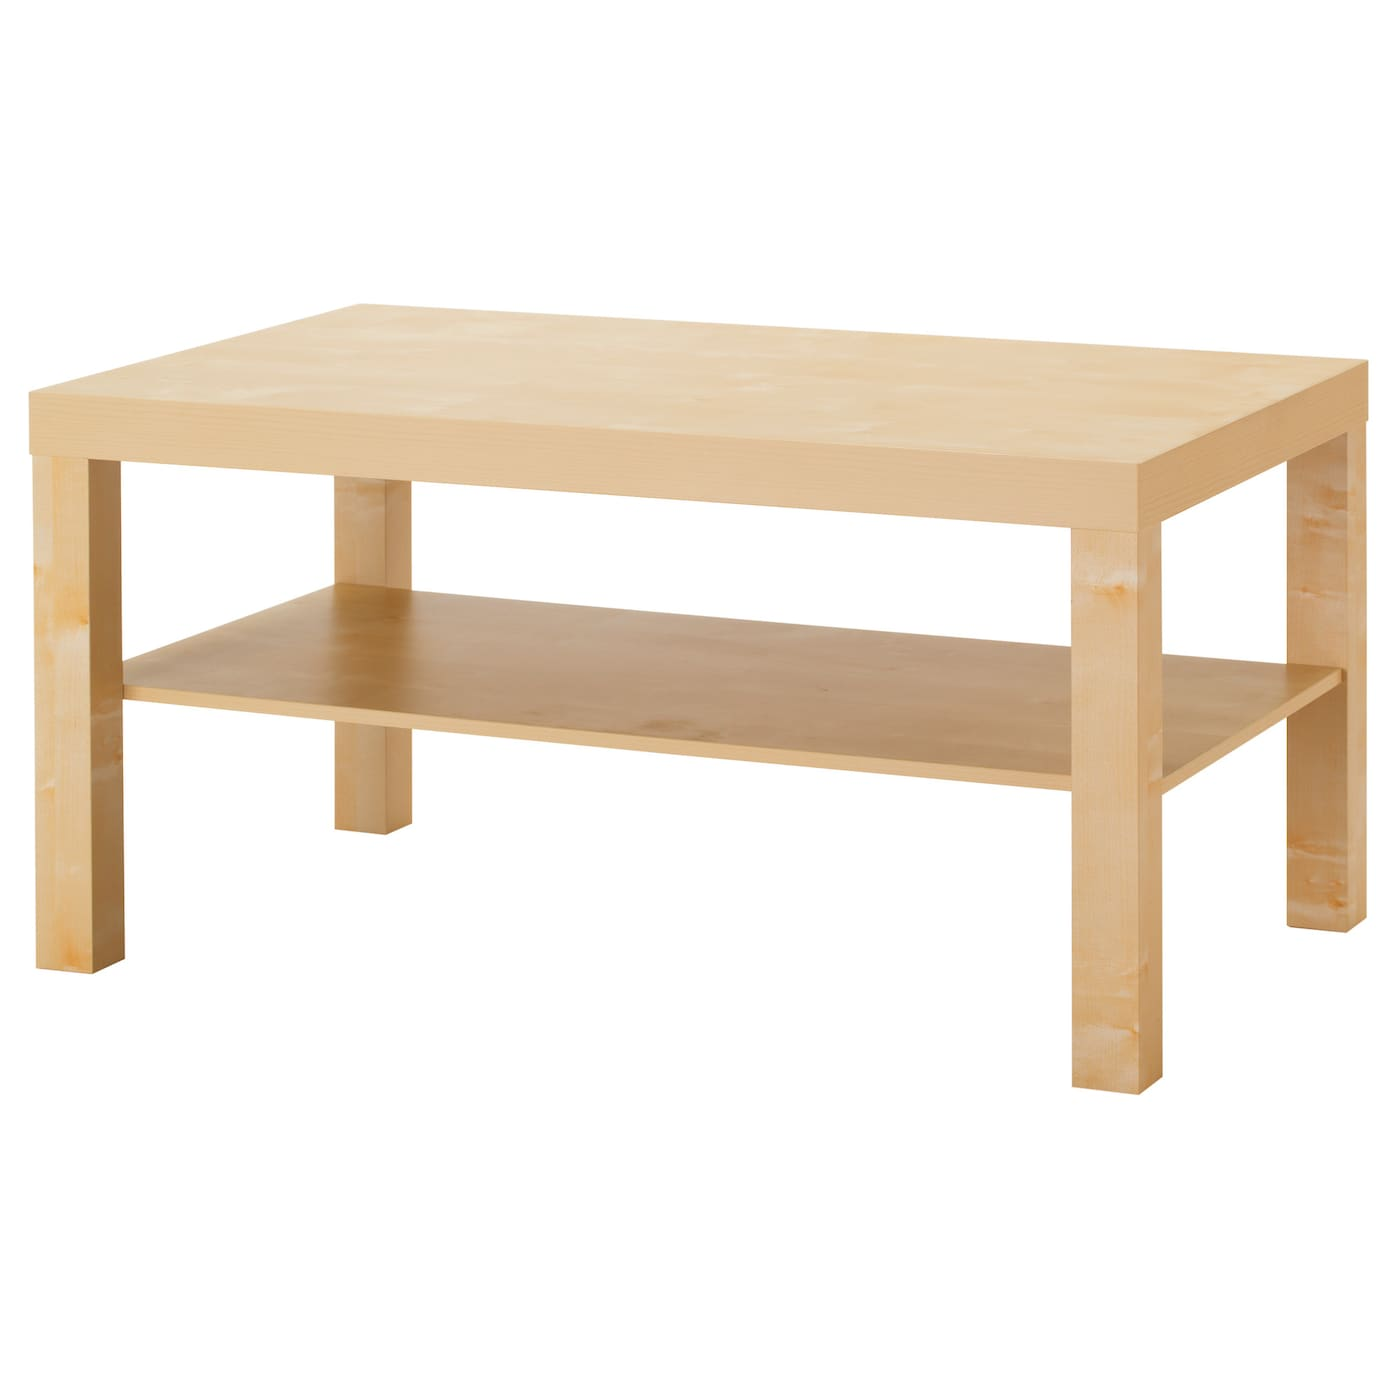 Lack coffee table birch effect 90 x 55 cm ikea for Table de fusion ikea